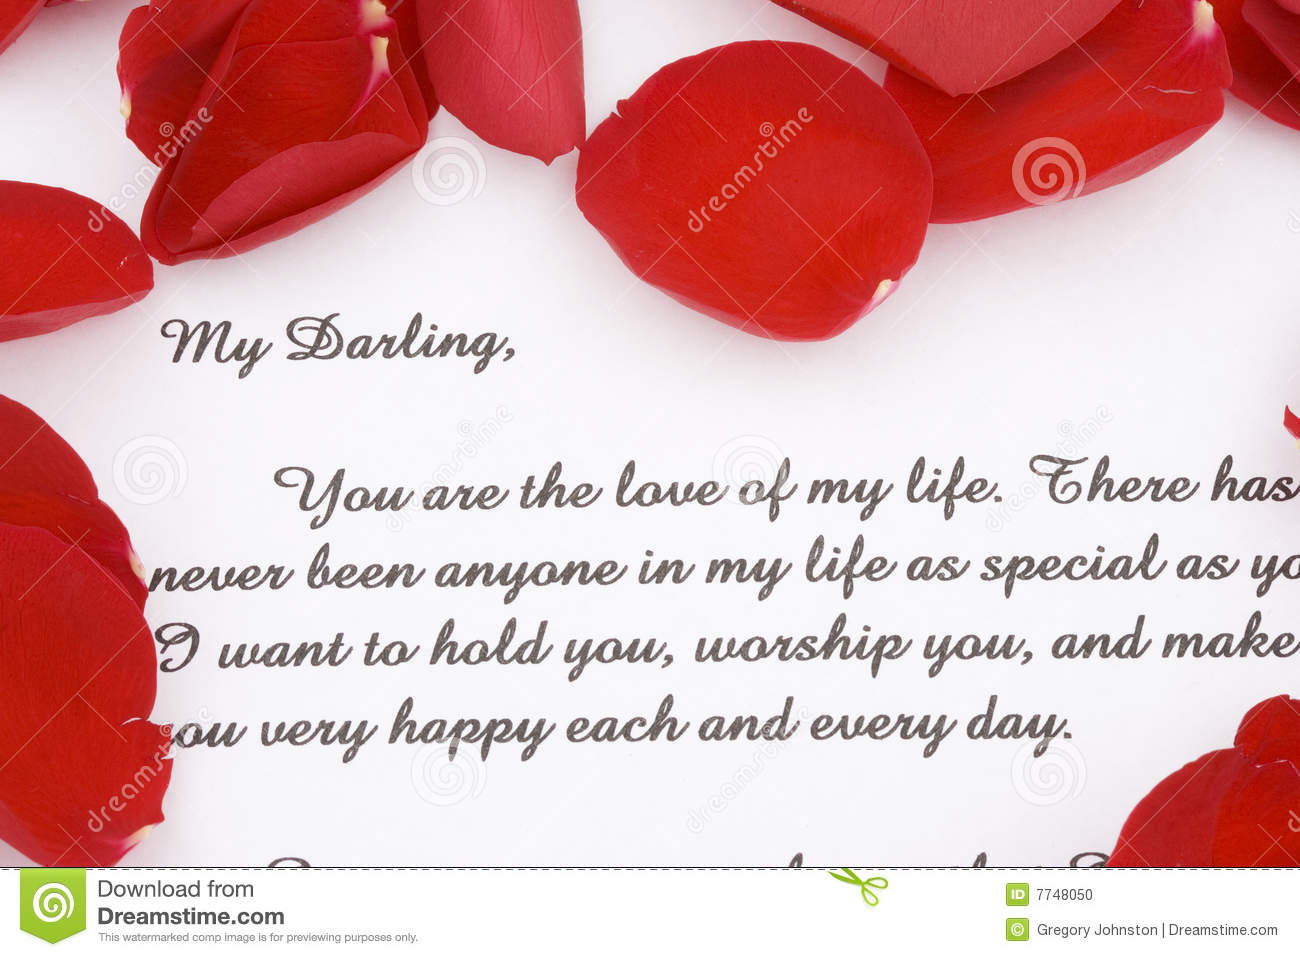 Love letter wallpapers 35 wallpapers adorable wallpapers - Y love letter wallpaper ...